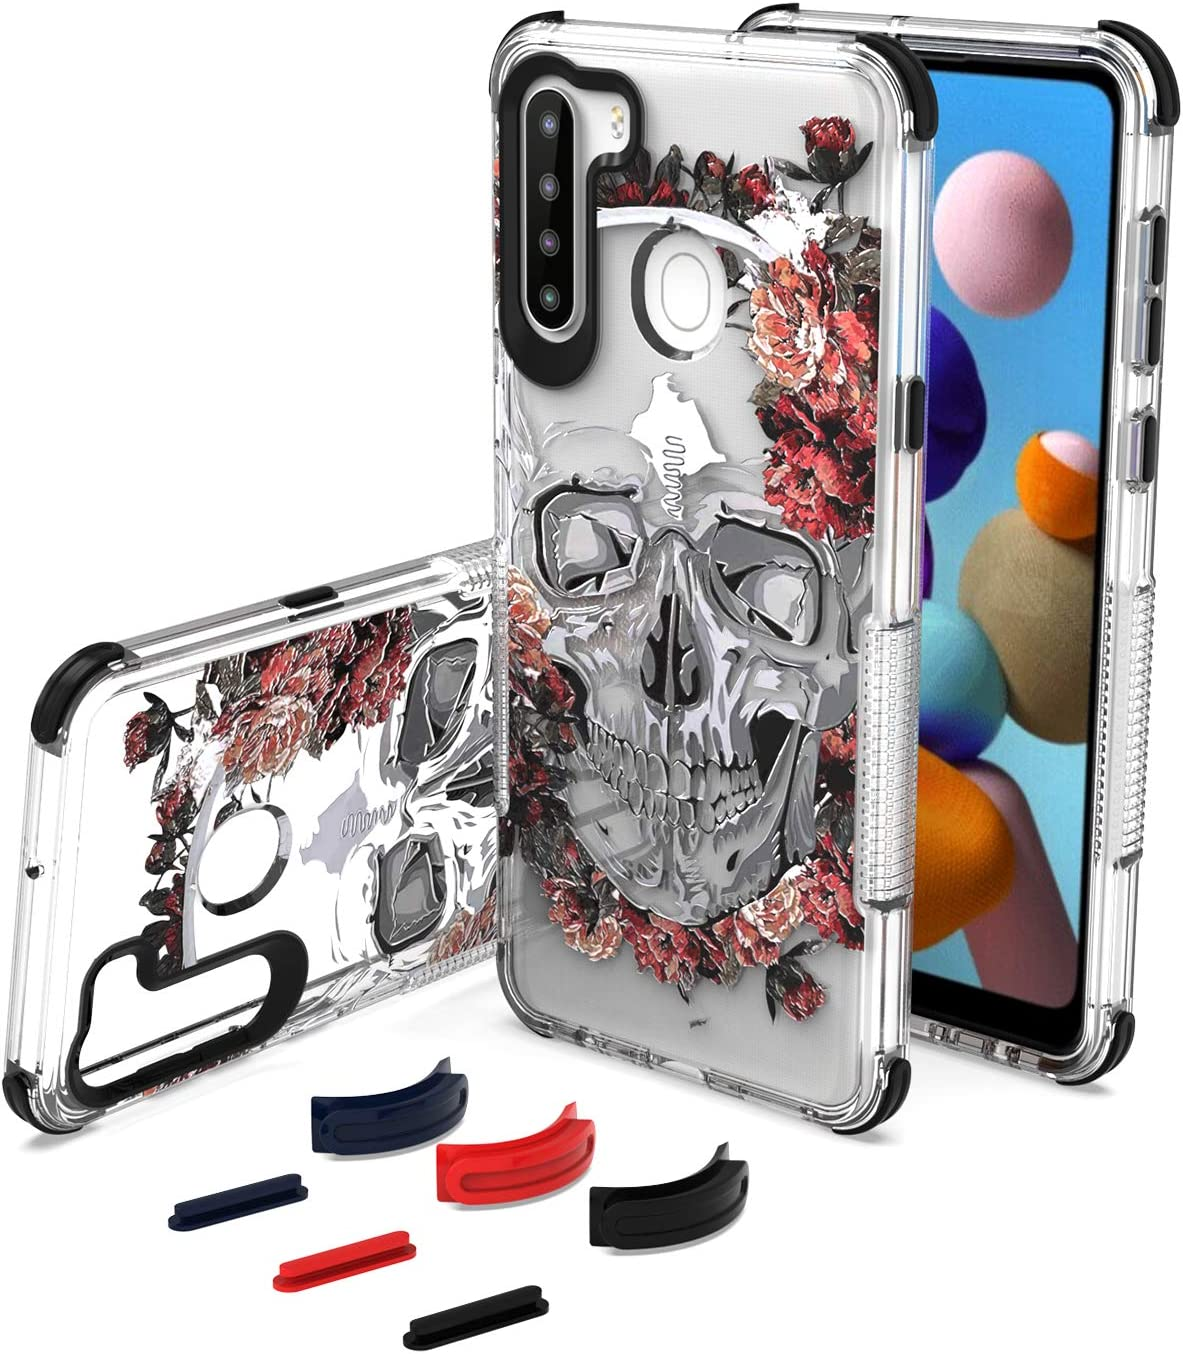 UNC Pro DIY Package Cell Phone Case for Samsung Galaxy A21, Replaceable Bumper & Key Buttons, Soft Clear TPU with 3D Dead Skull Hybrid Shockproof Cover for Women Girls Men